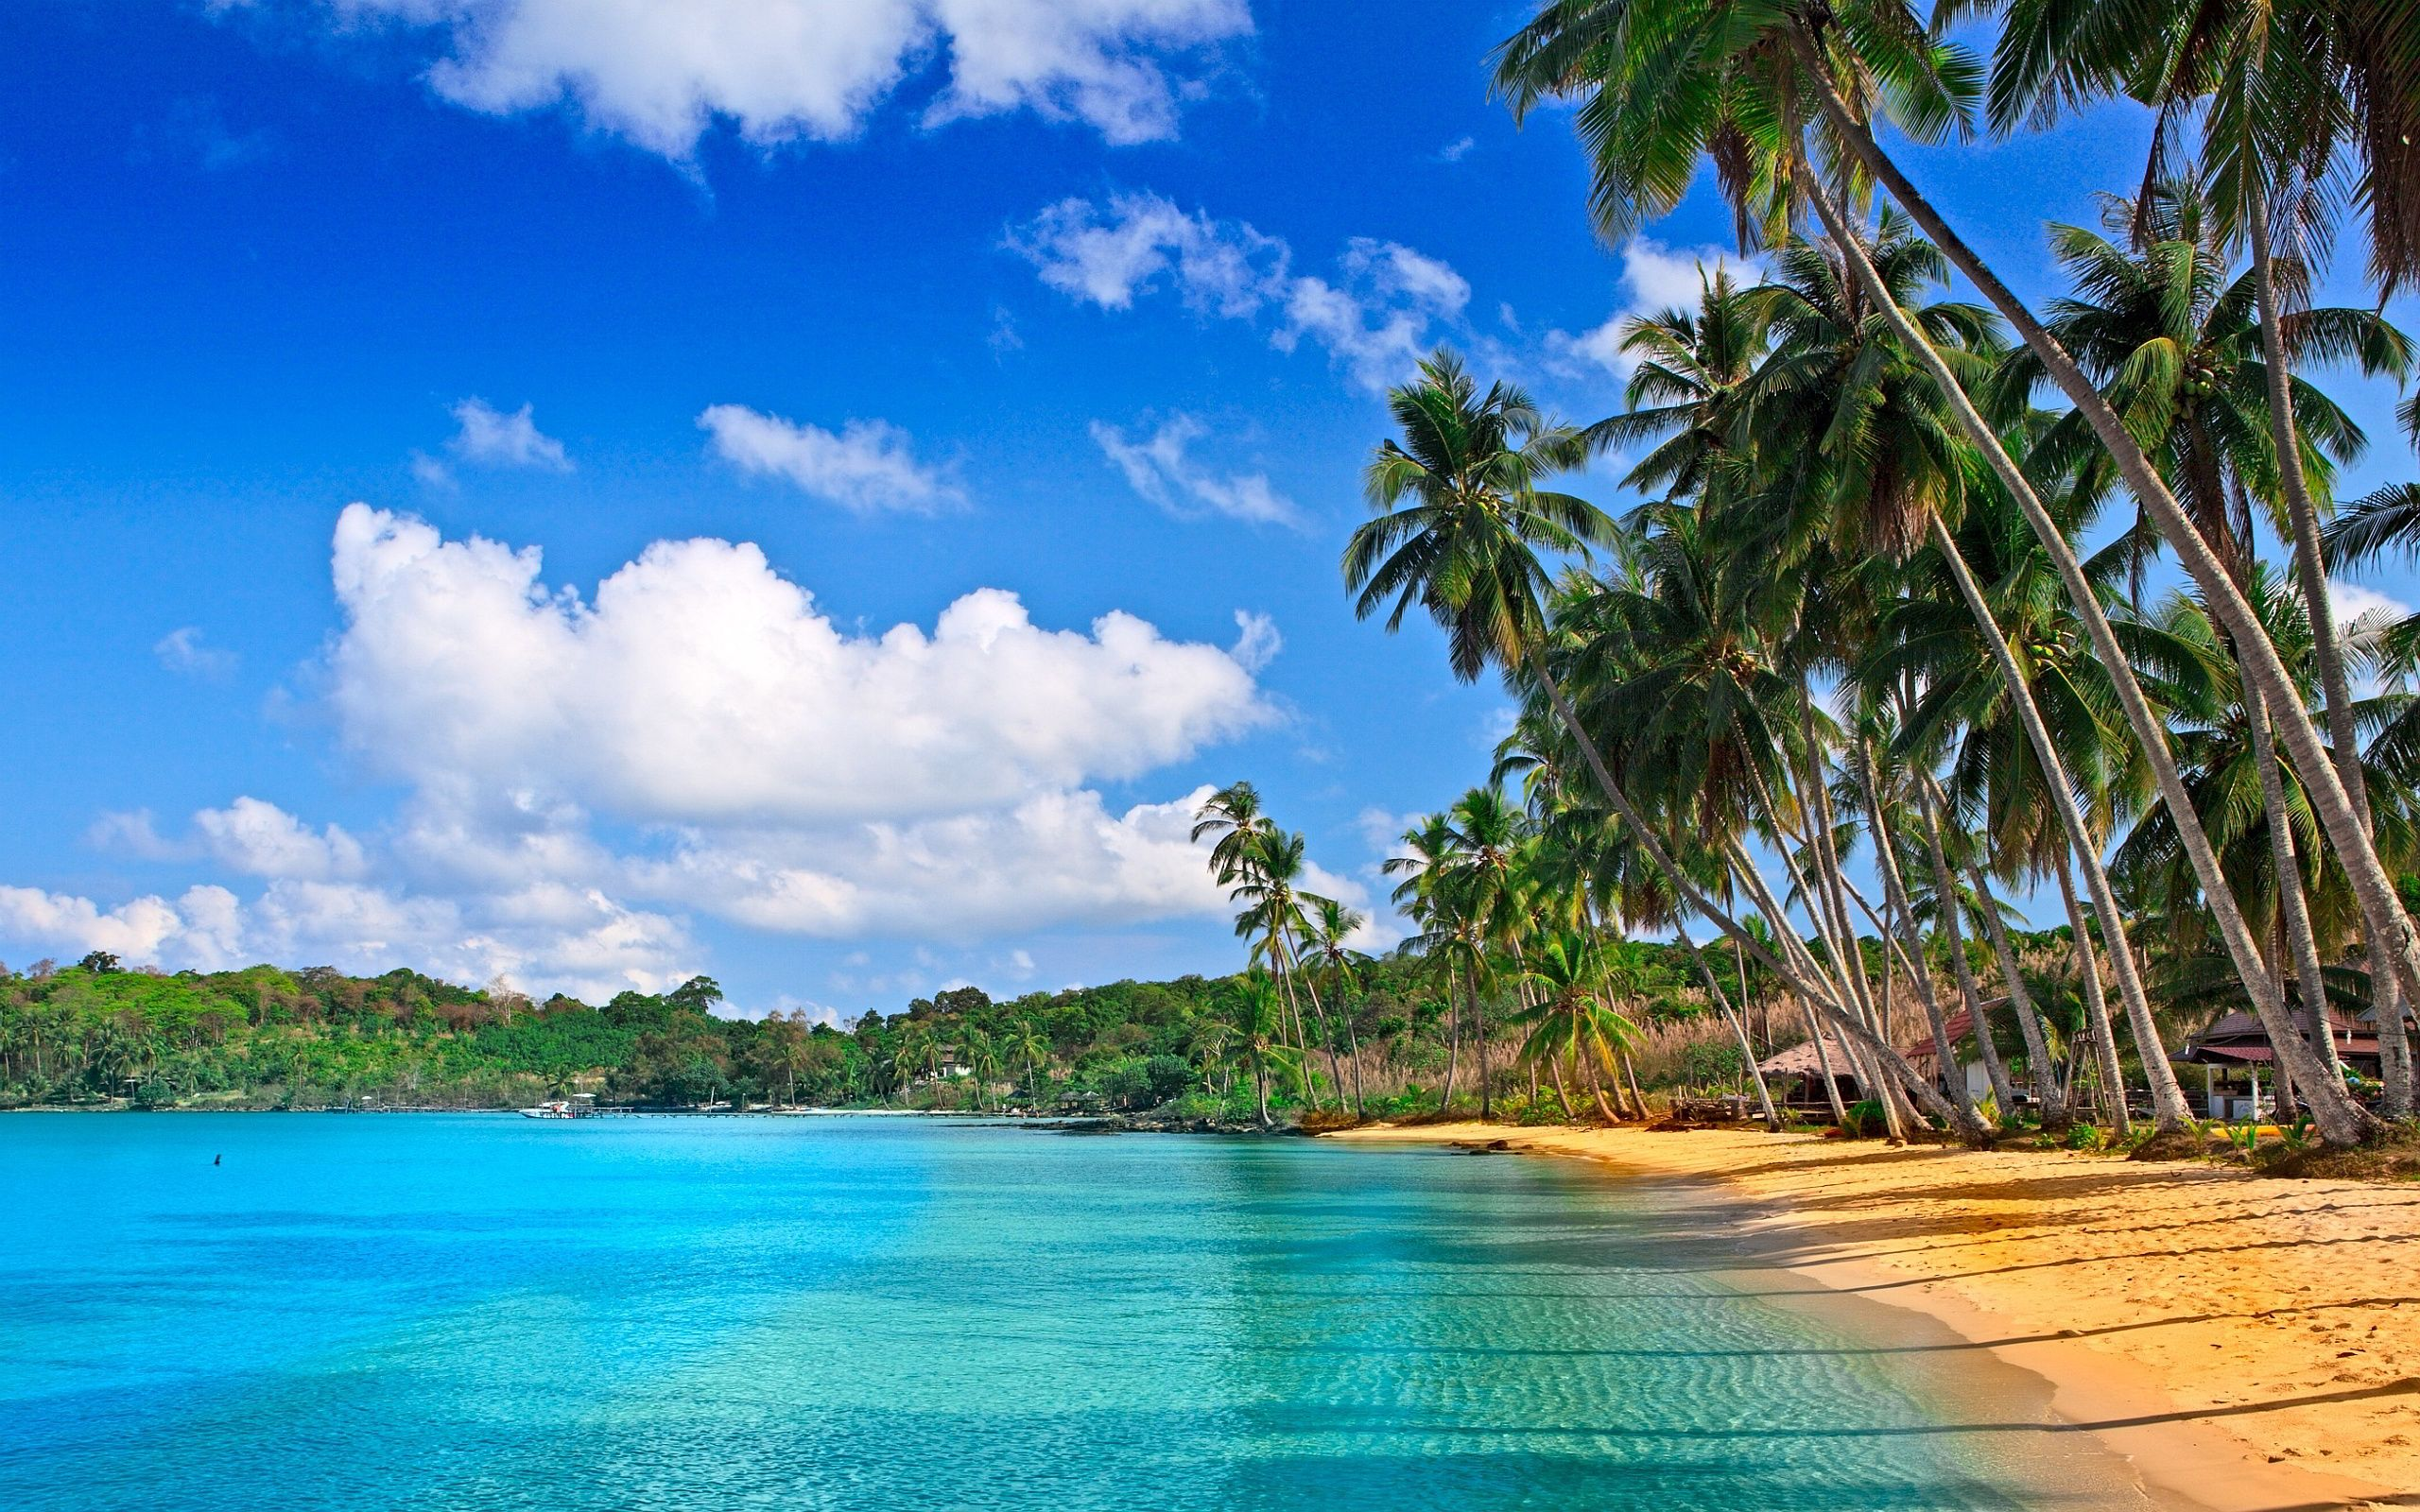 Tropical Beach Landscape Wallpapers Top Free Tropical